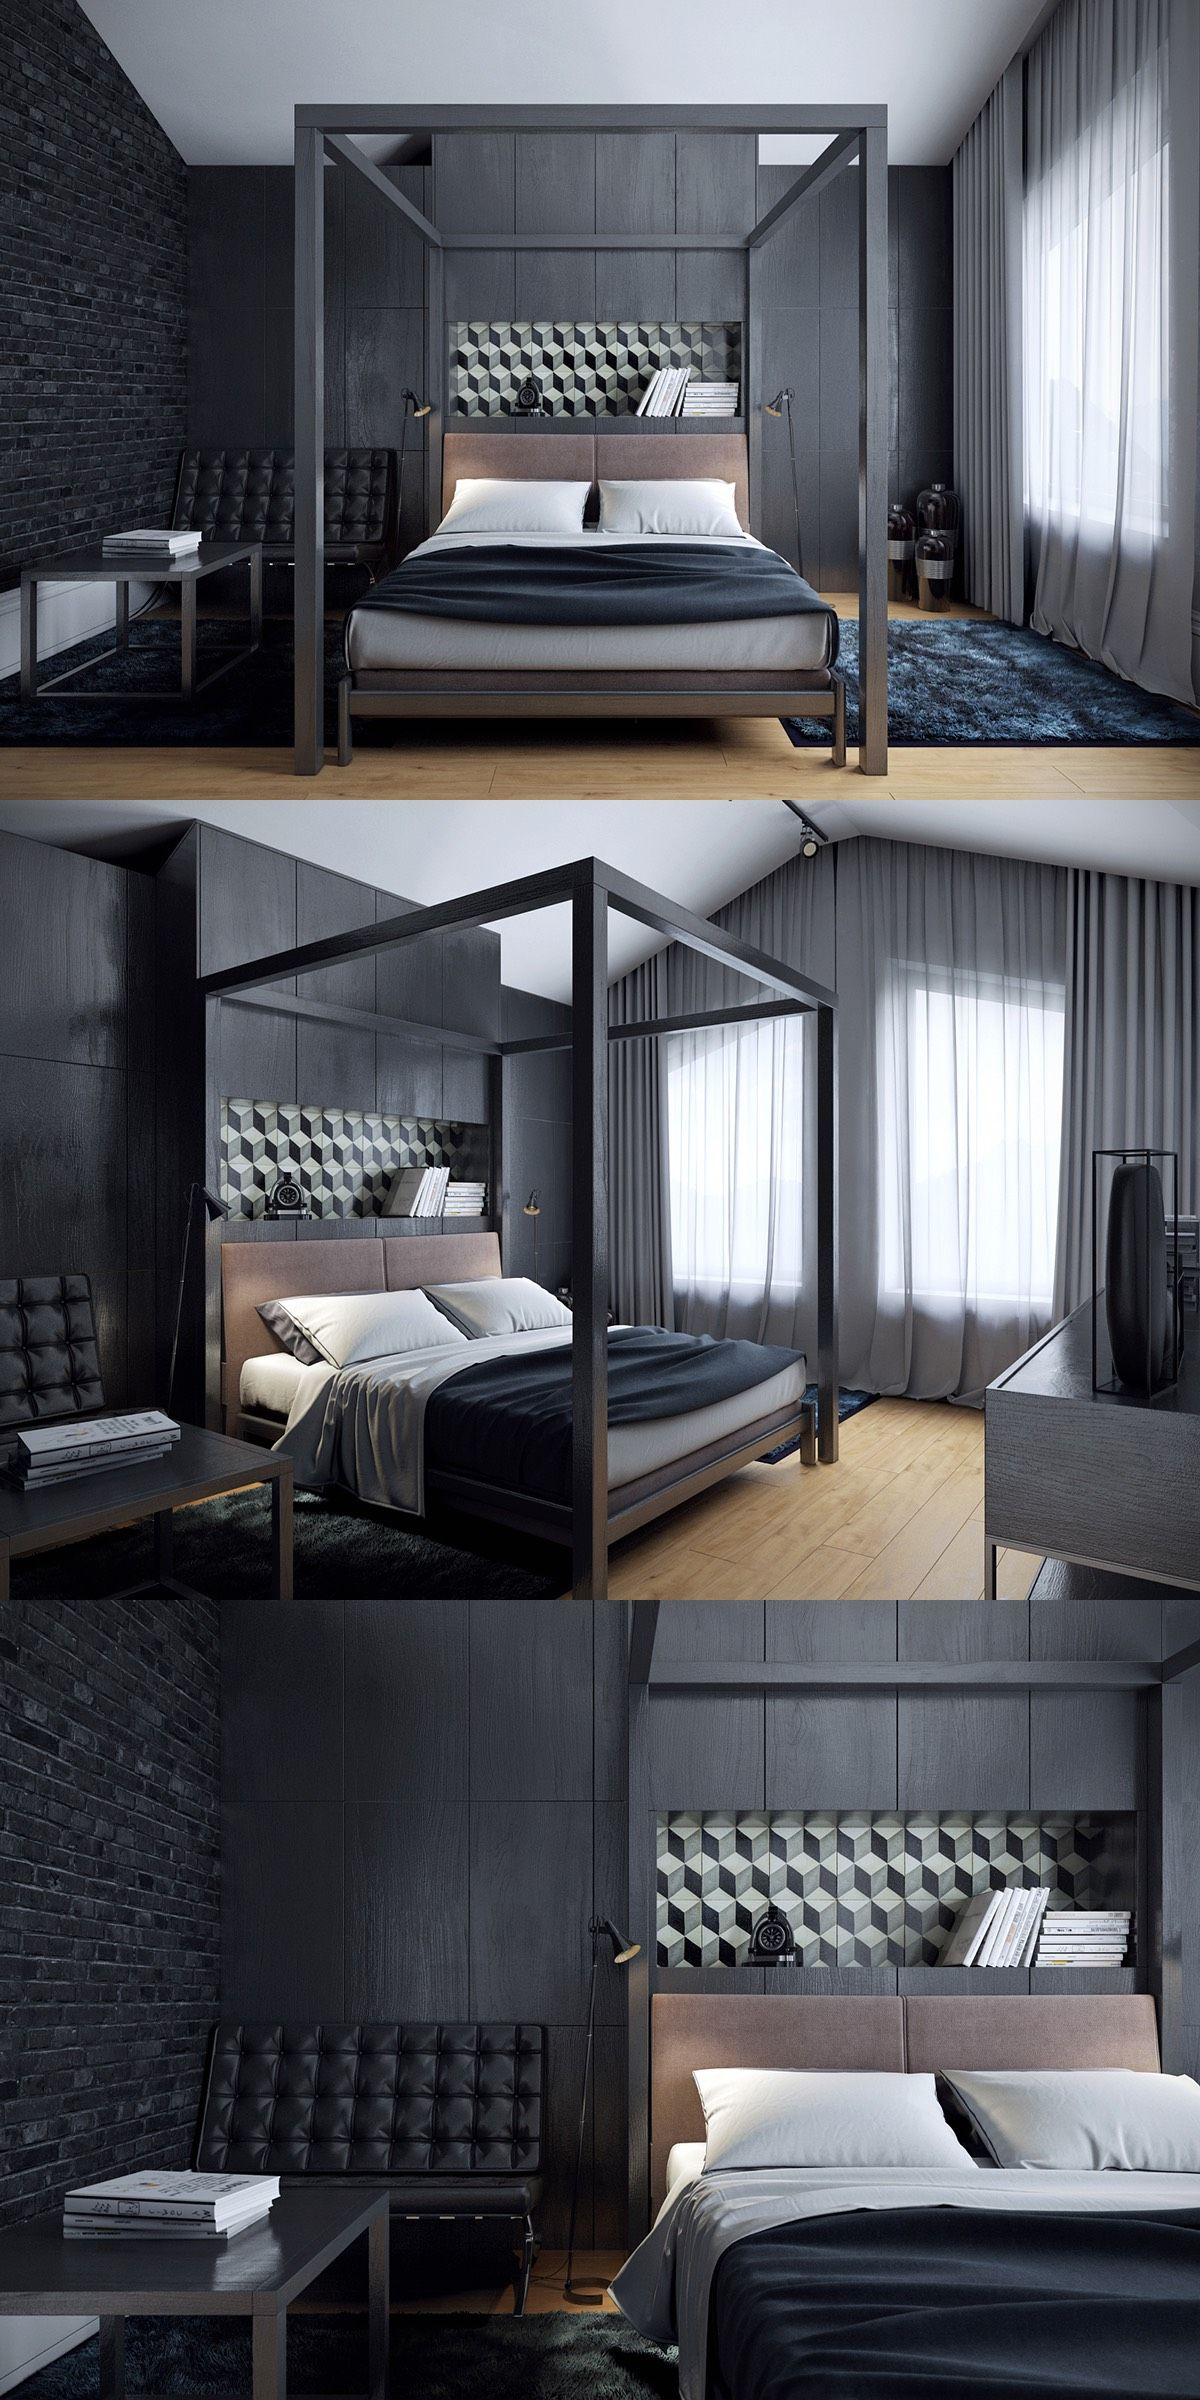 Dark color bedroom decorating ideas shows  luxury and masculine impression roohome also these bedrooms pull you into dream like state with black